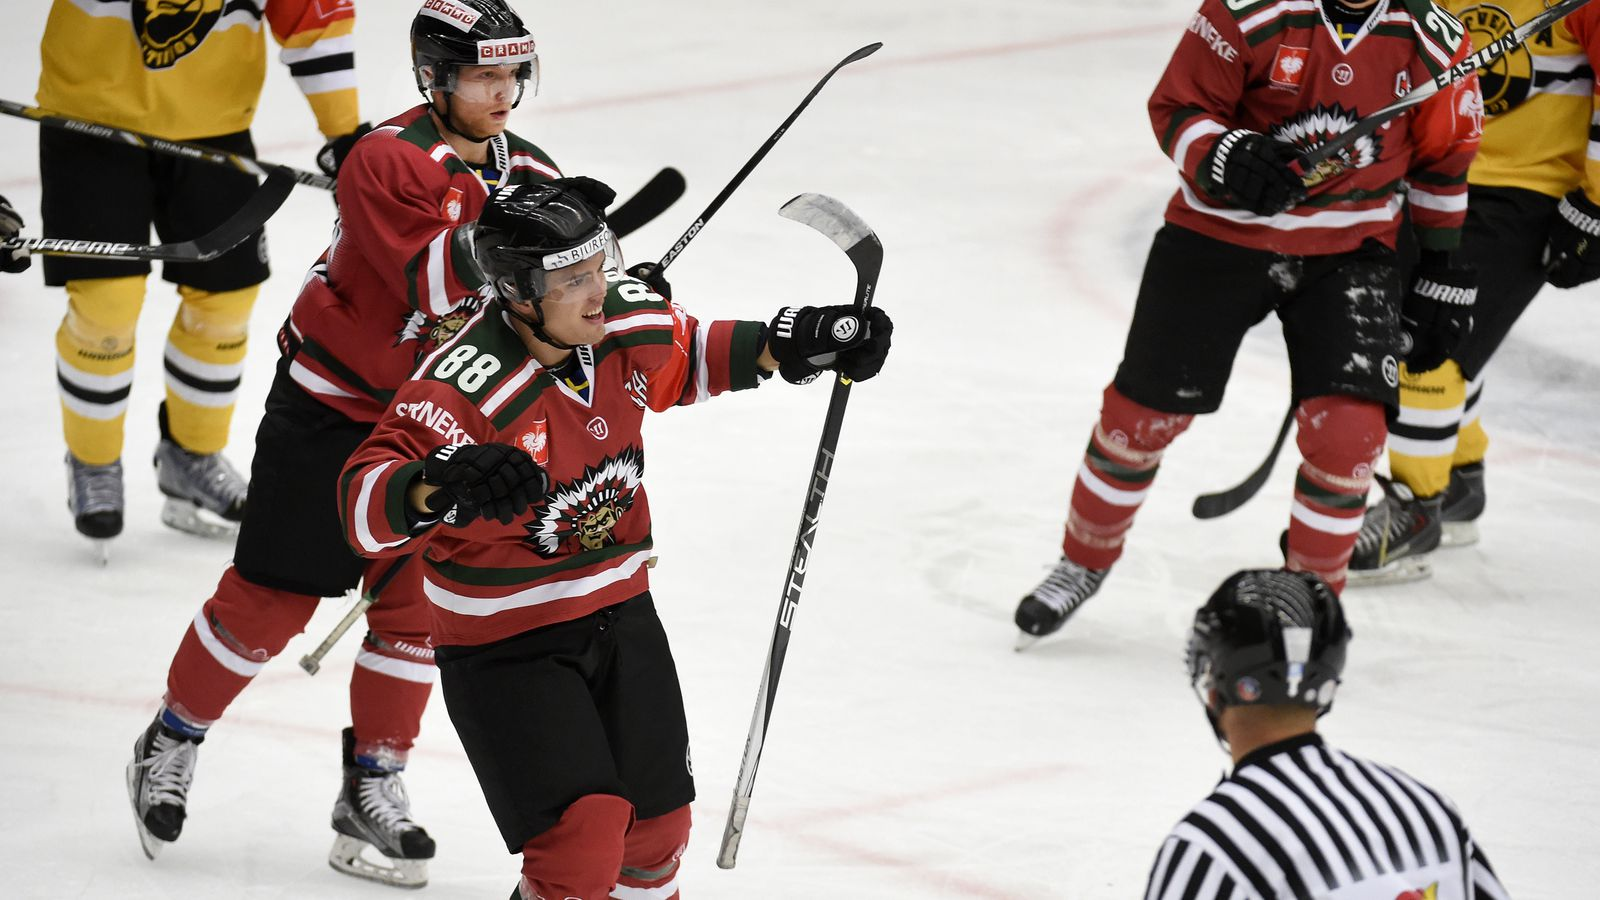 Andreas Johnson: Andreas Johnson Helps Frölunda To A Win With A Two-point